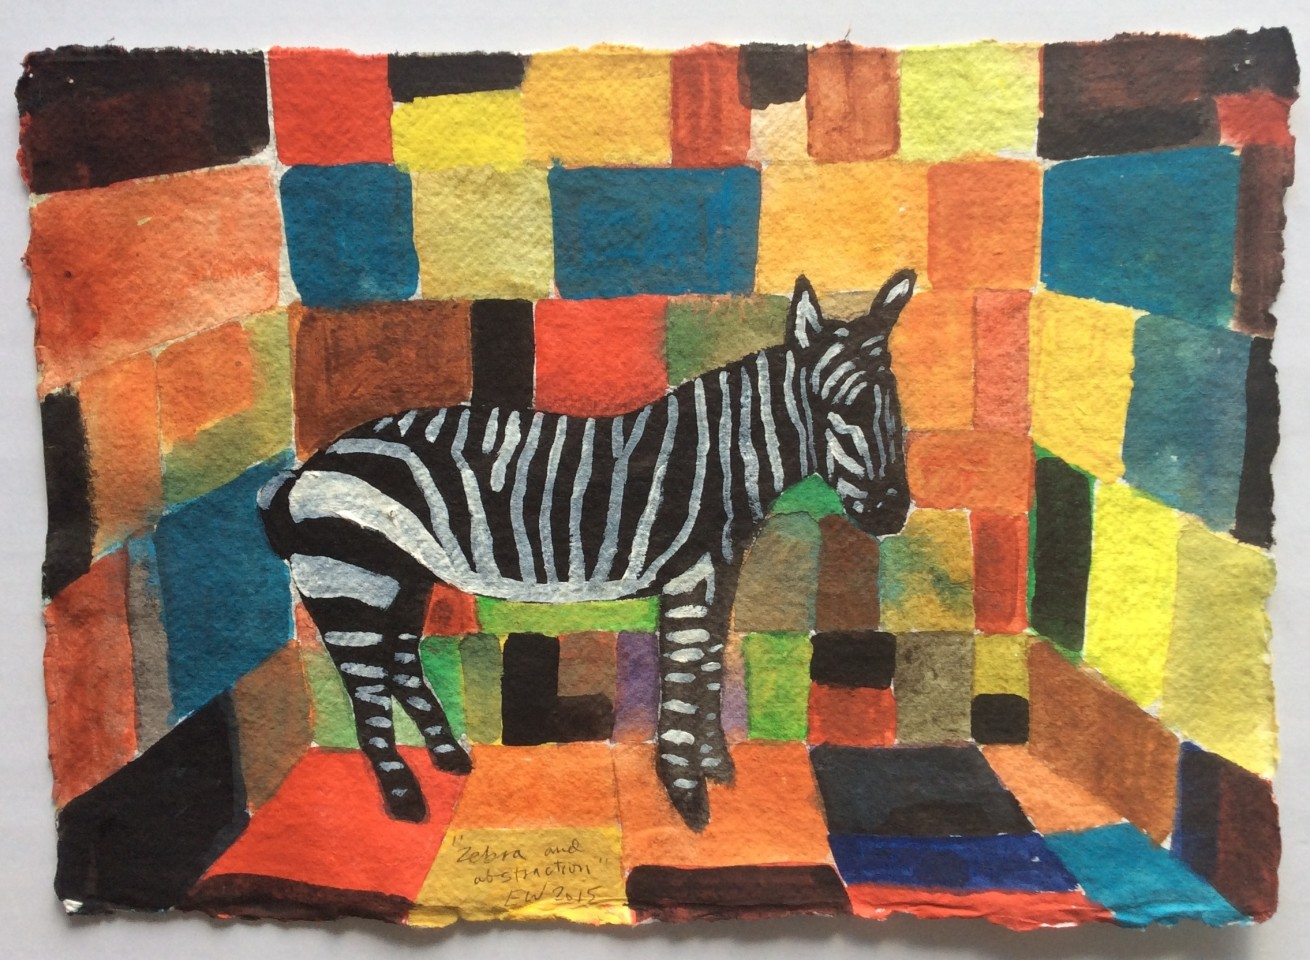 Emrys Williams, Zebra and Abstraction